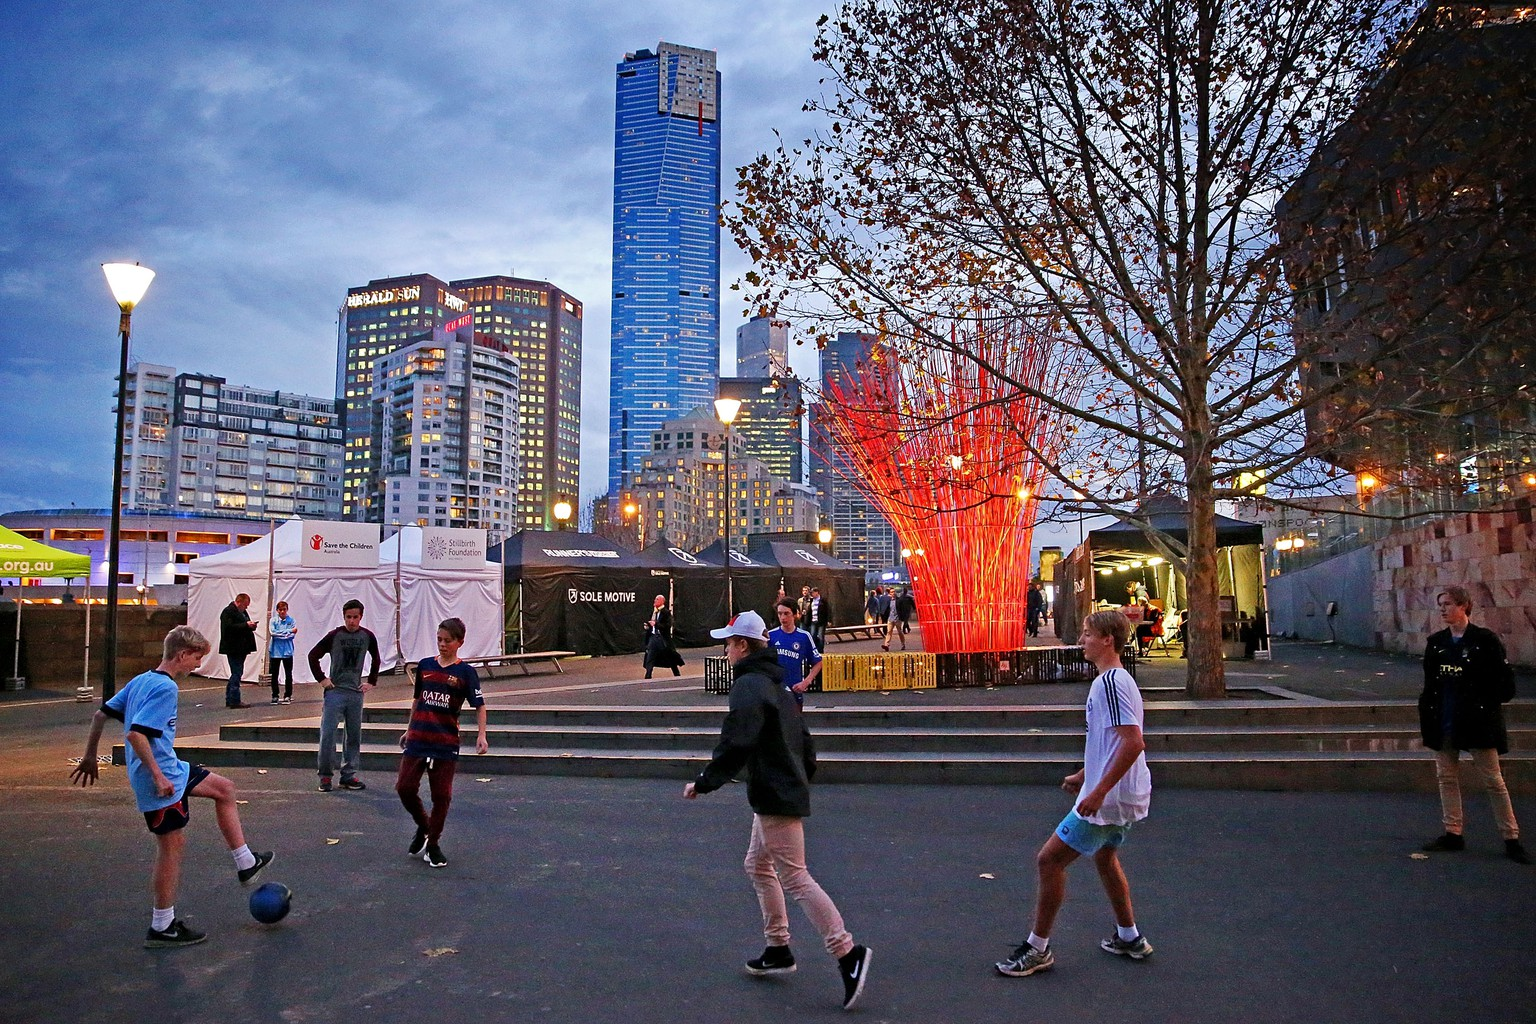 MELBOURNE, AUSTRALIA - JULY 24:  Children play football in the street as they make their way to the MCG to attend the International Champions Cup match between Real Madrid and Manchester City at the Melbourne Cricket Ground on July 24, 2015 in Melbourne, Australia.  (Photo by Scott Barbour/Getty Images)